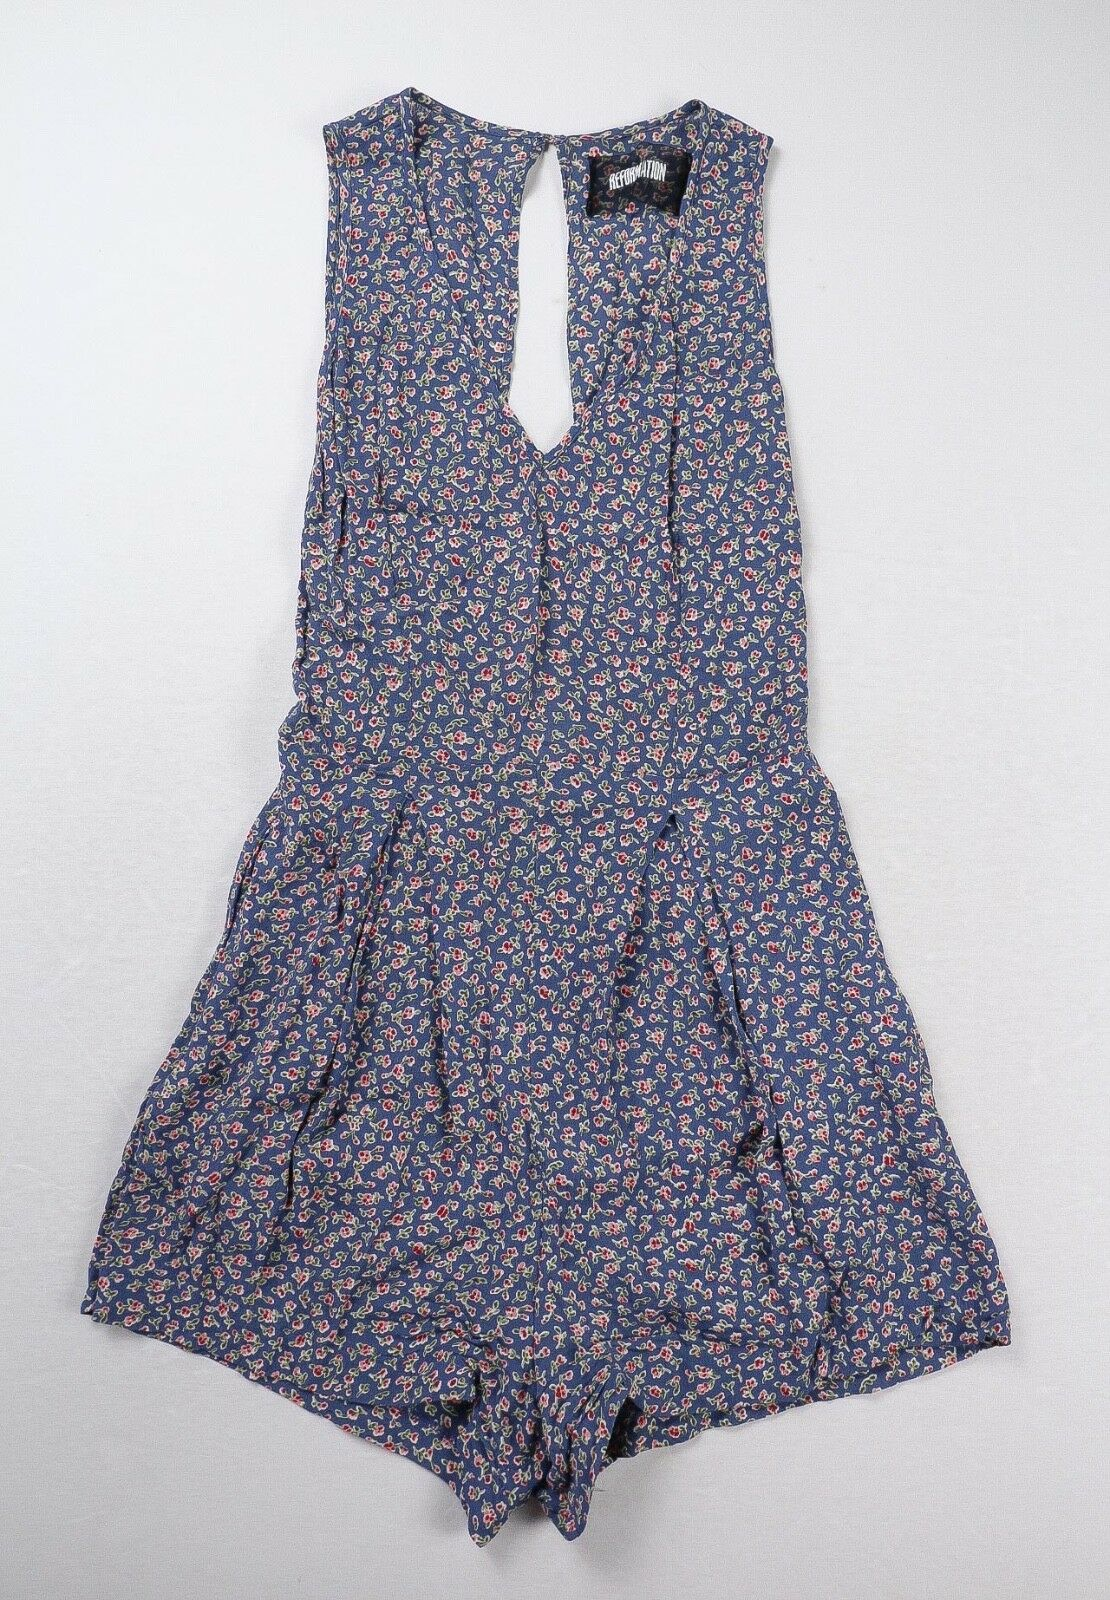 Reformation bluee Floral Print Petula Romper Size 0P